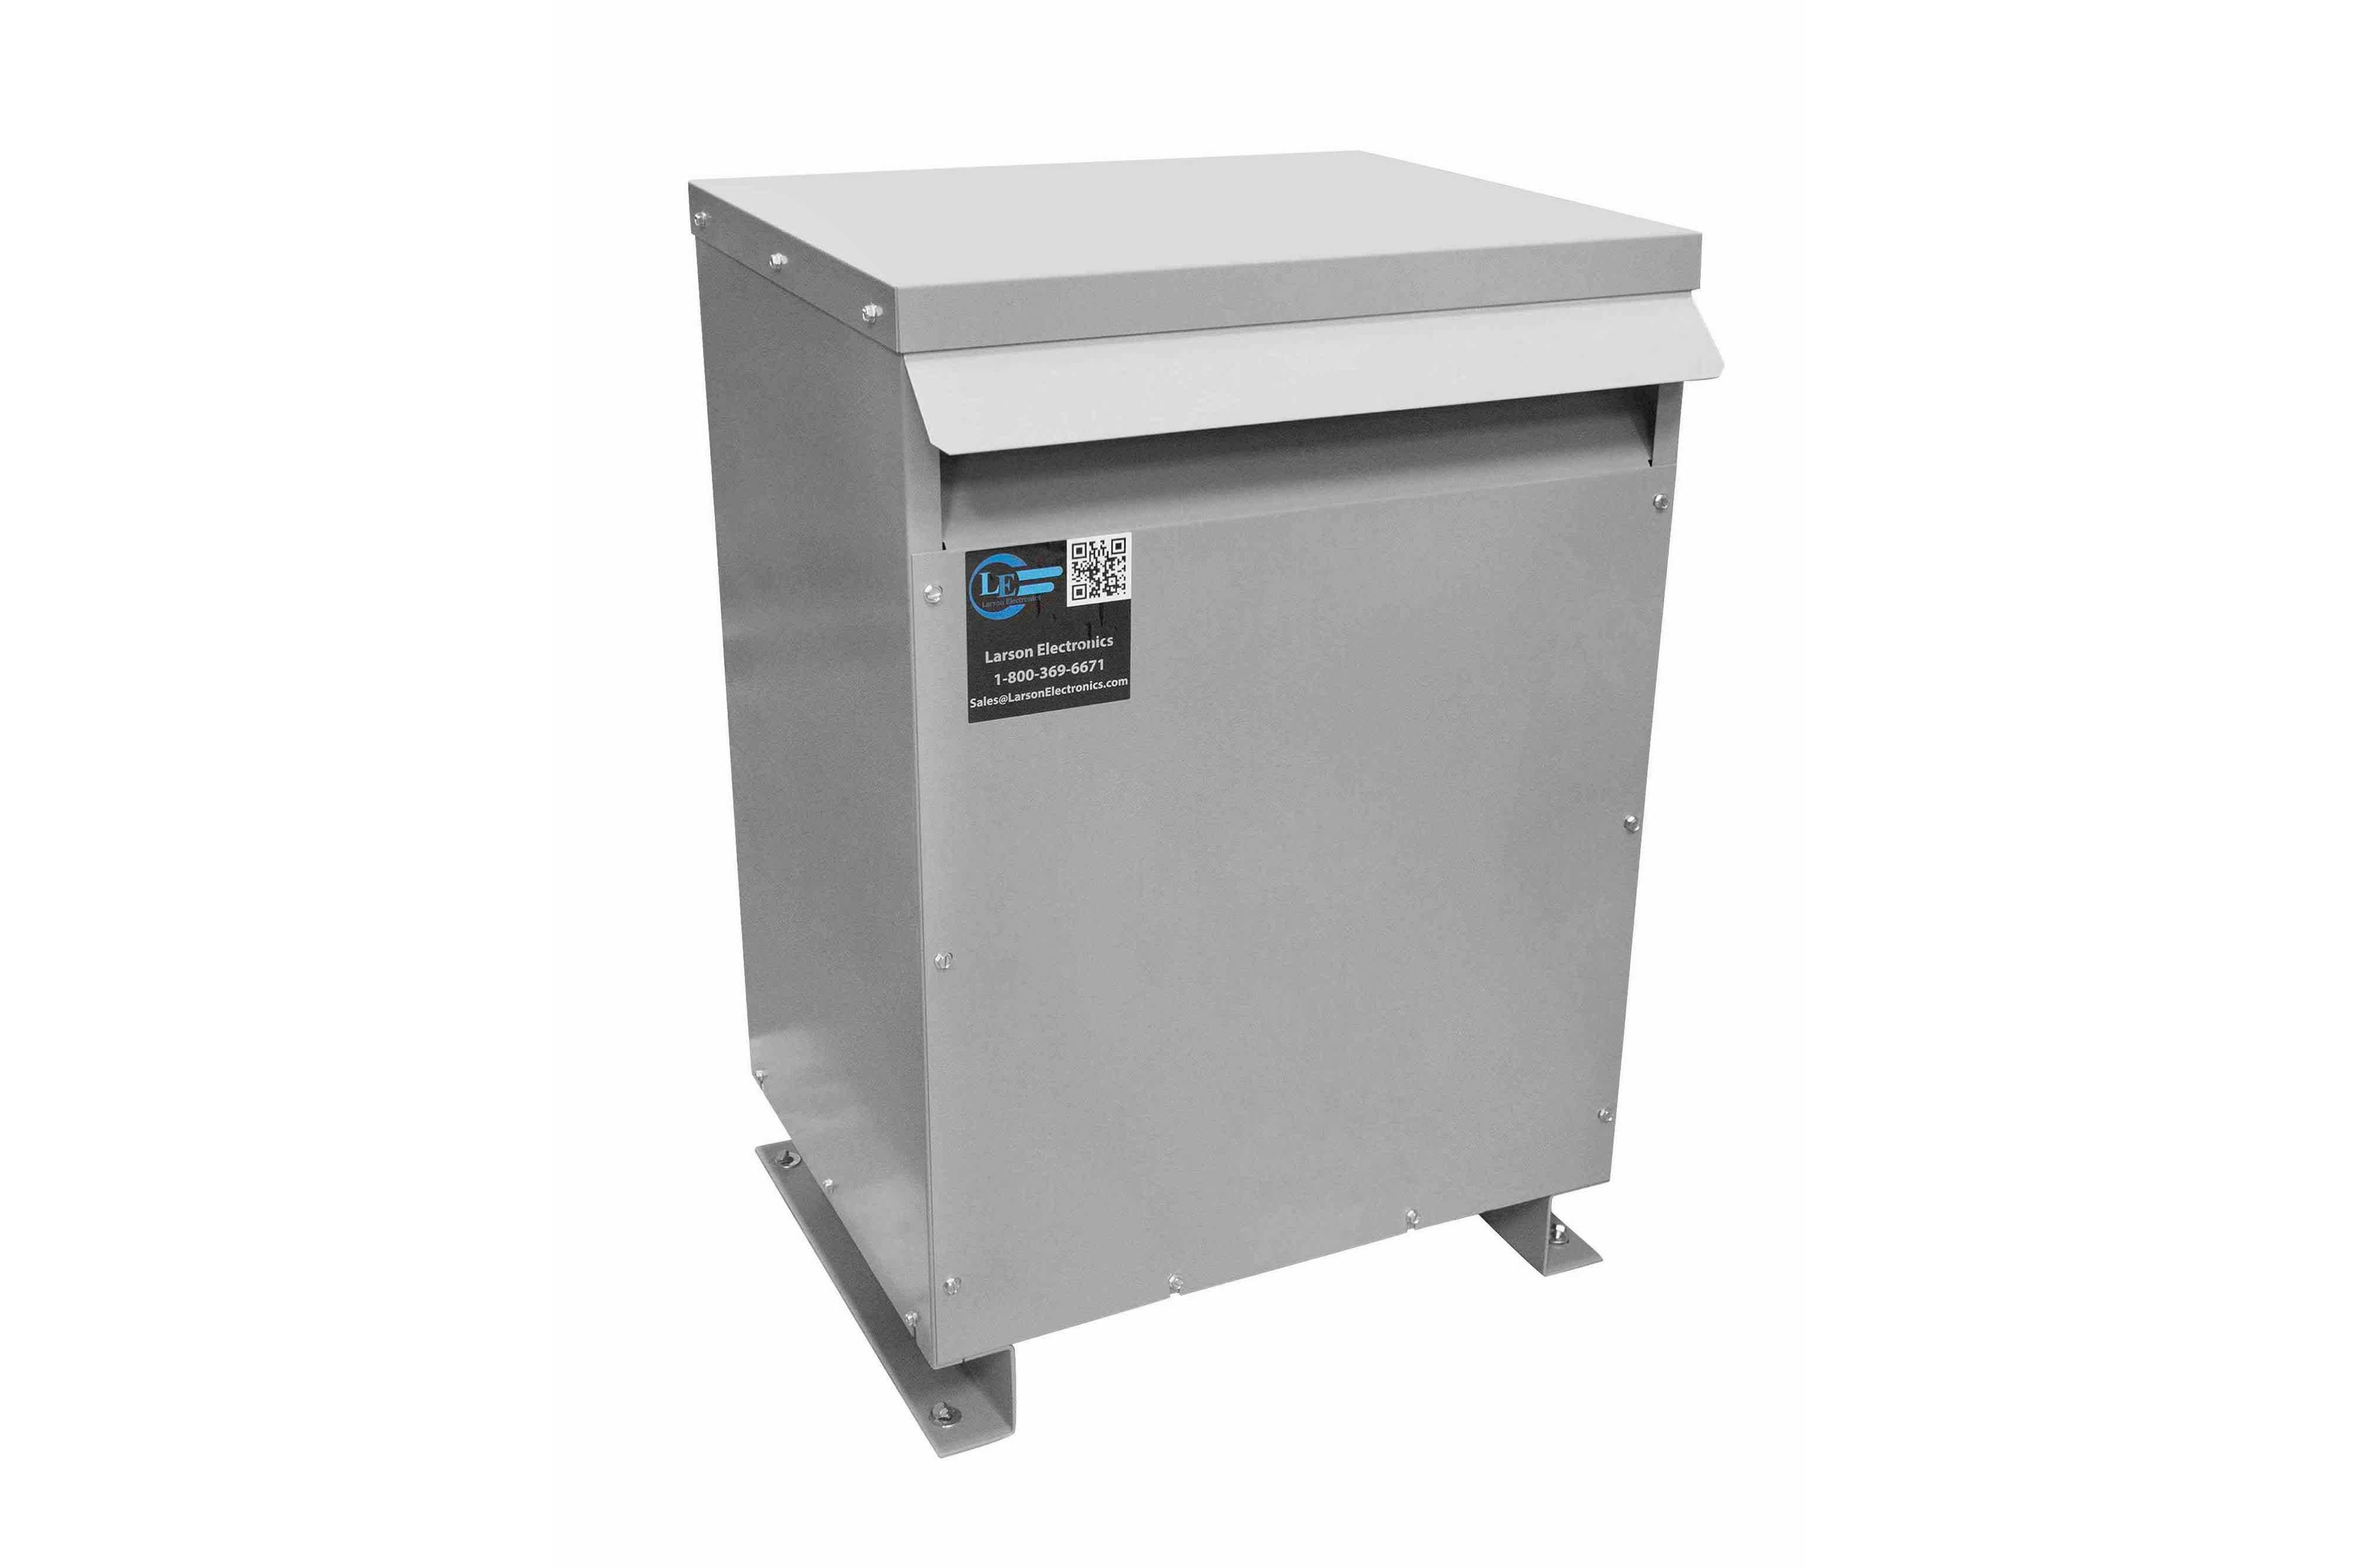 100 kVA 3PH Isolation Transformer, 208V Wye Primary, 480V Delta Secondary, N3R, Ventilated, 60 Hz